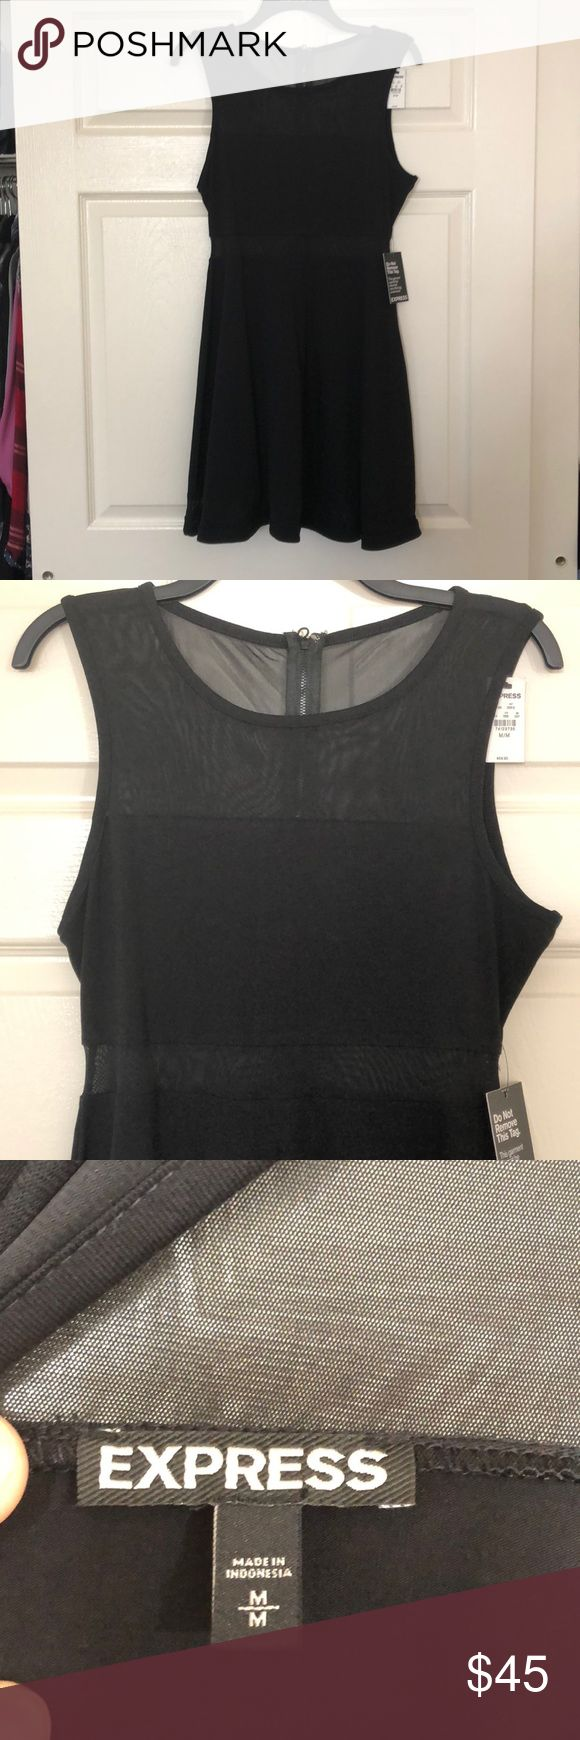 NWT. Express Dress See through material above chest and at waist (look at second and third picture) Express Dresses